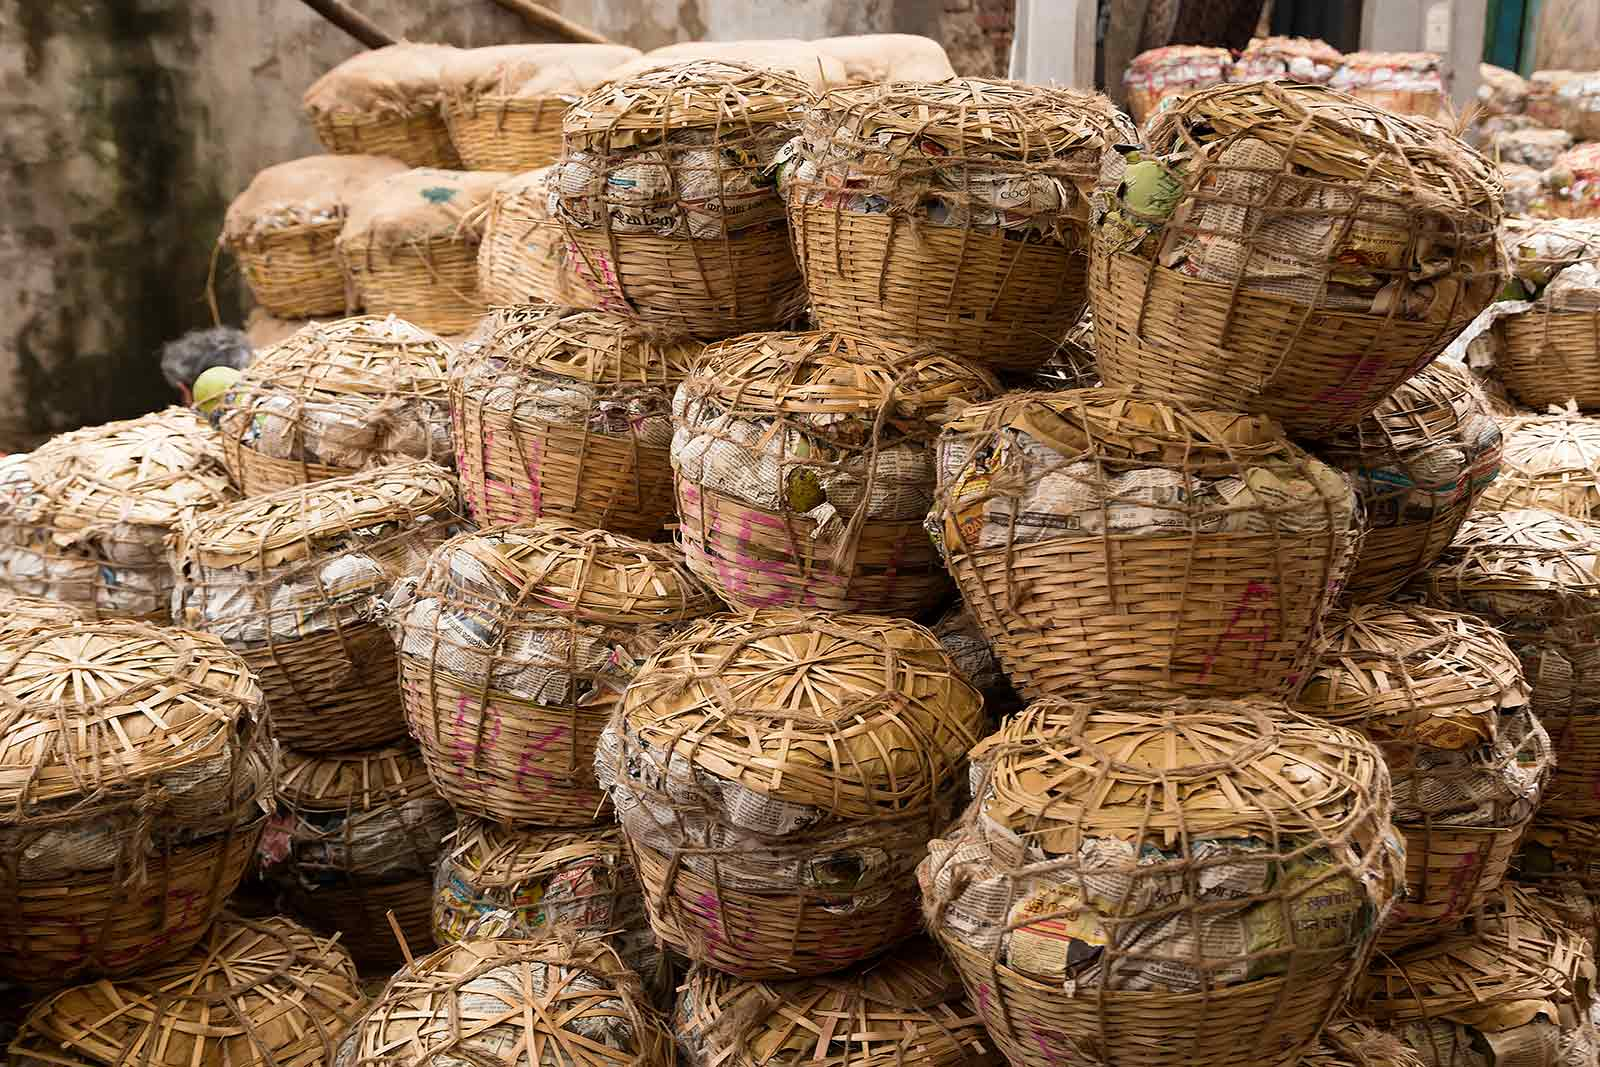 baskets-with-vegetables-wholesale-fruit-market-howrah-kolkata-west-bengal-india